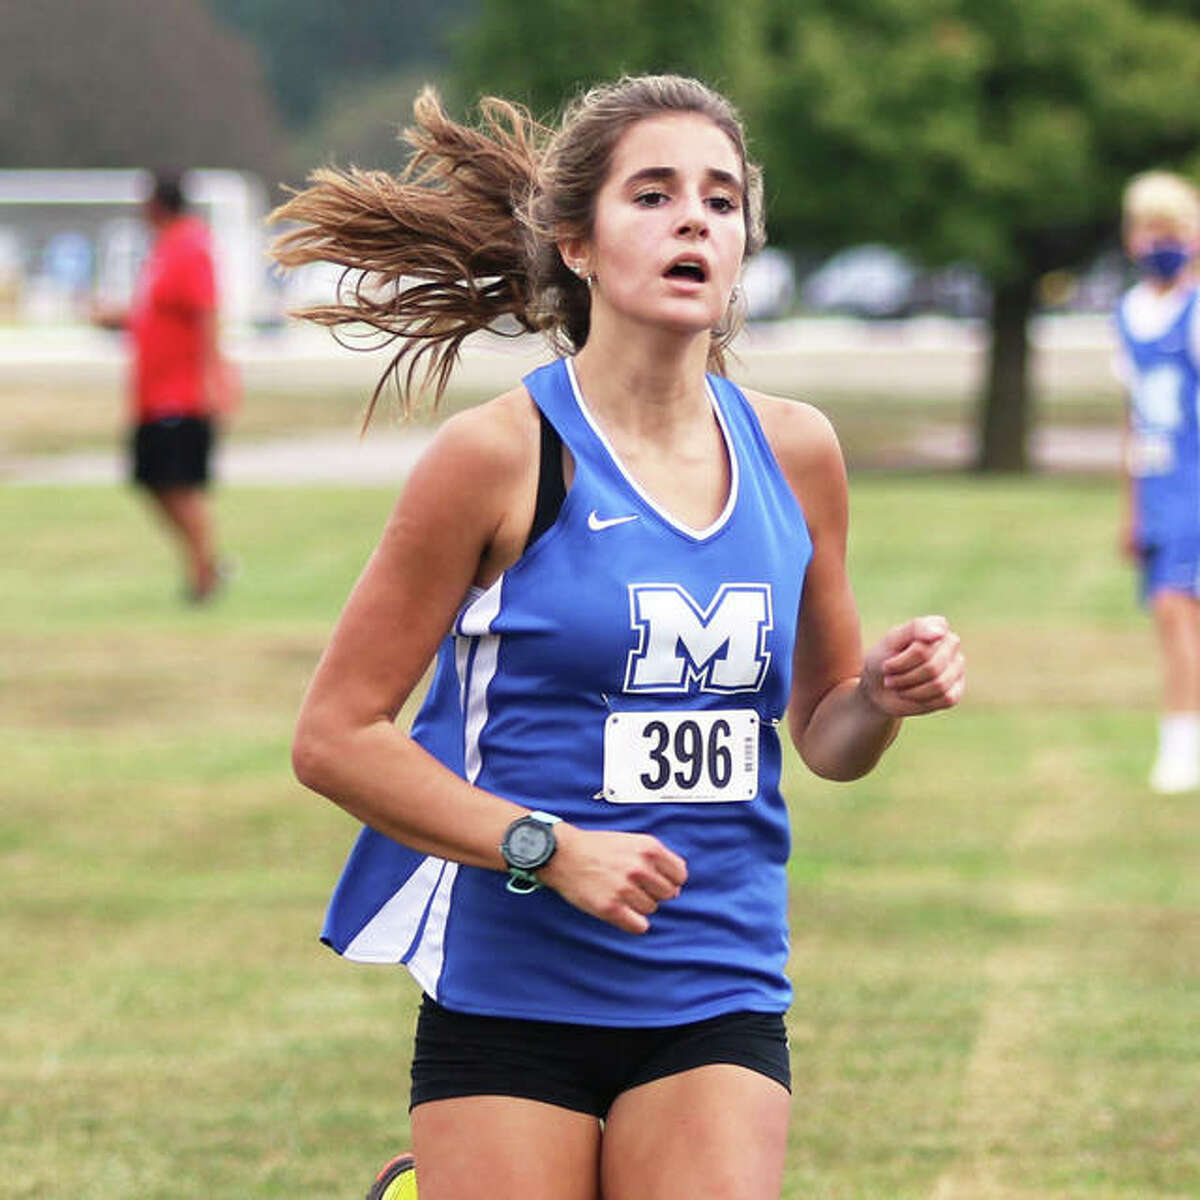 Marquette Catholic sophomore Kailey Vickrey approaches the finish in third place at last Wednesday's Alton Invite at Moore Park in Alton. Vickrey is one of 11 underclassmen among the 12 boys and girls runners in the Explorers' program.